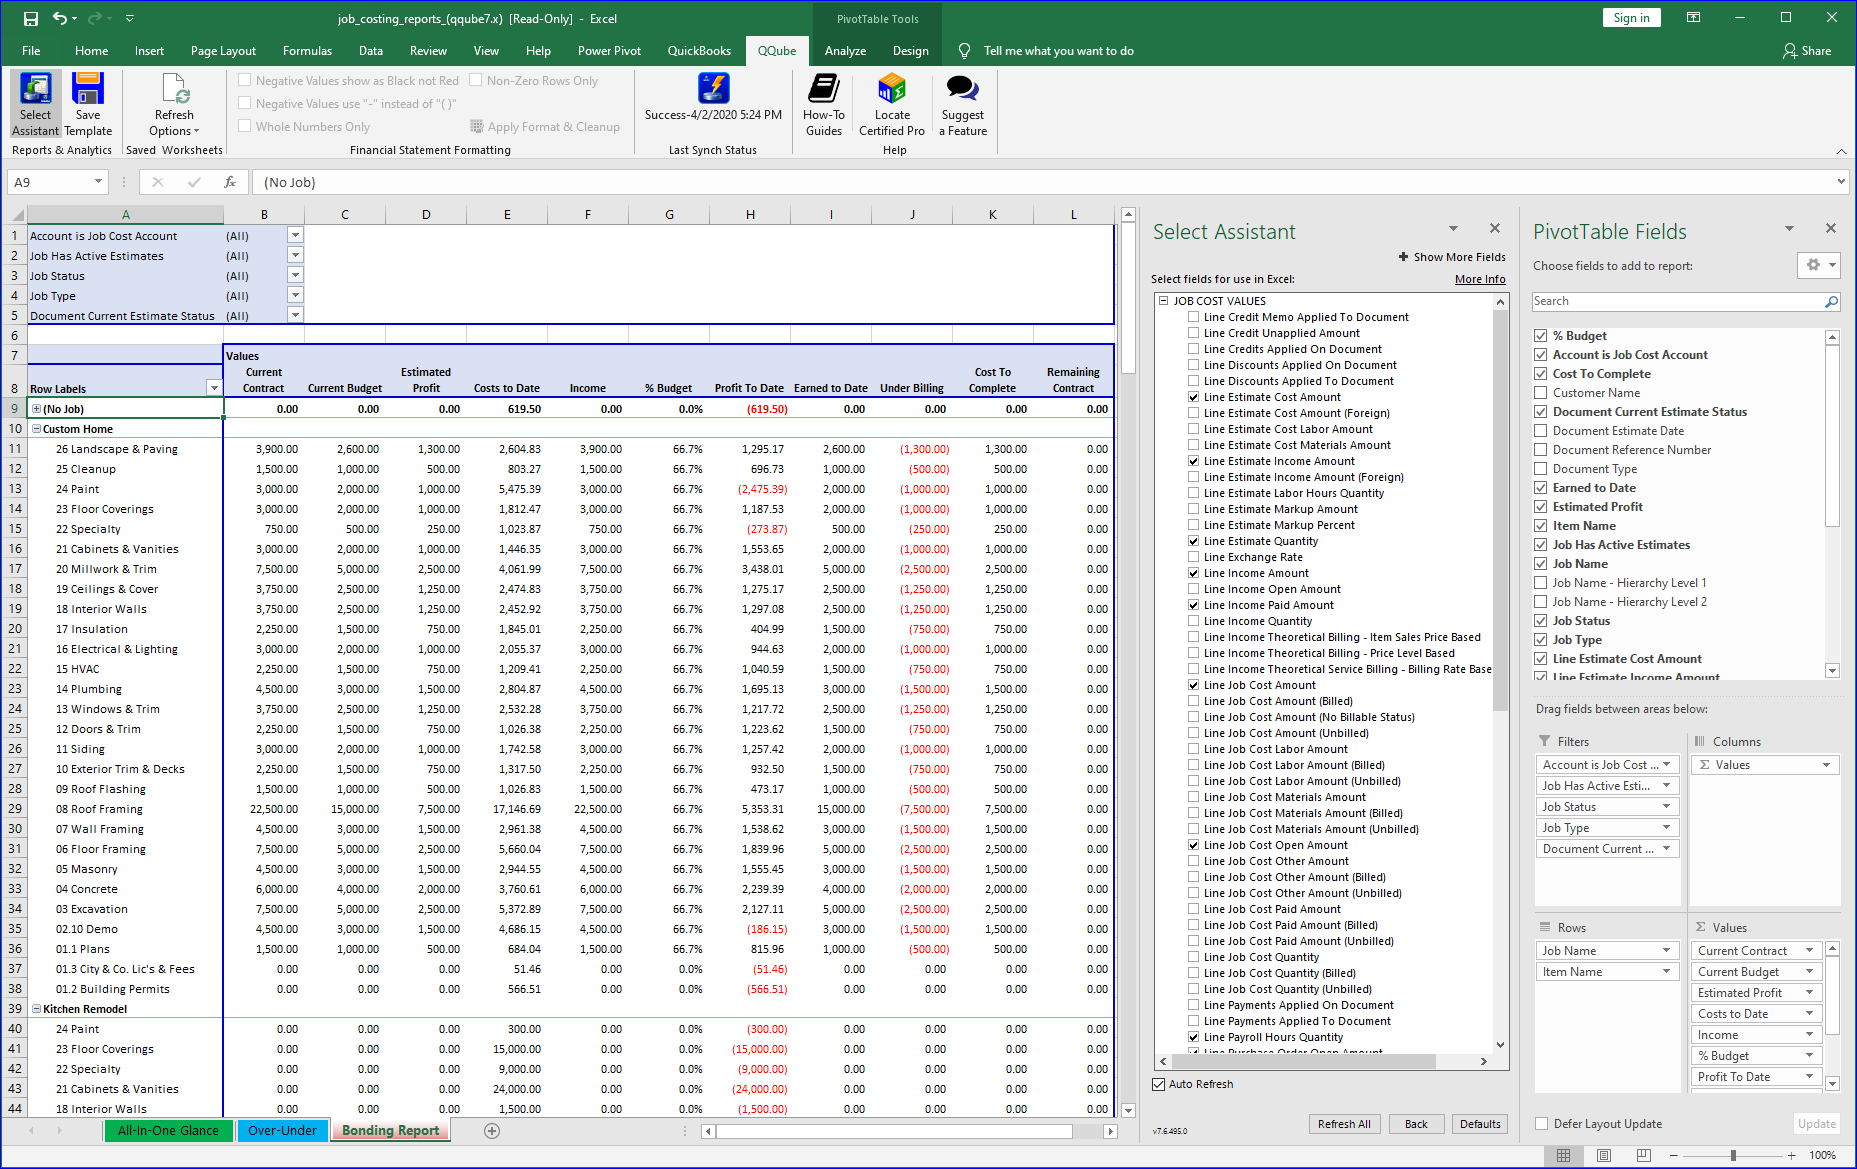 QuickBooks Job Bonding Report using QQube and Excel